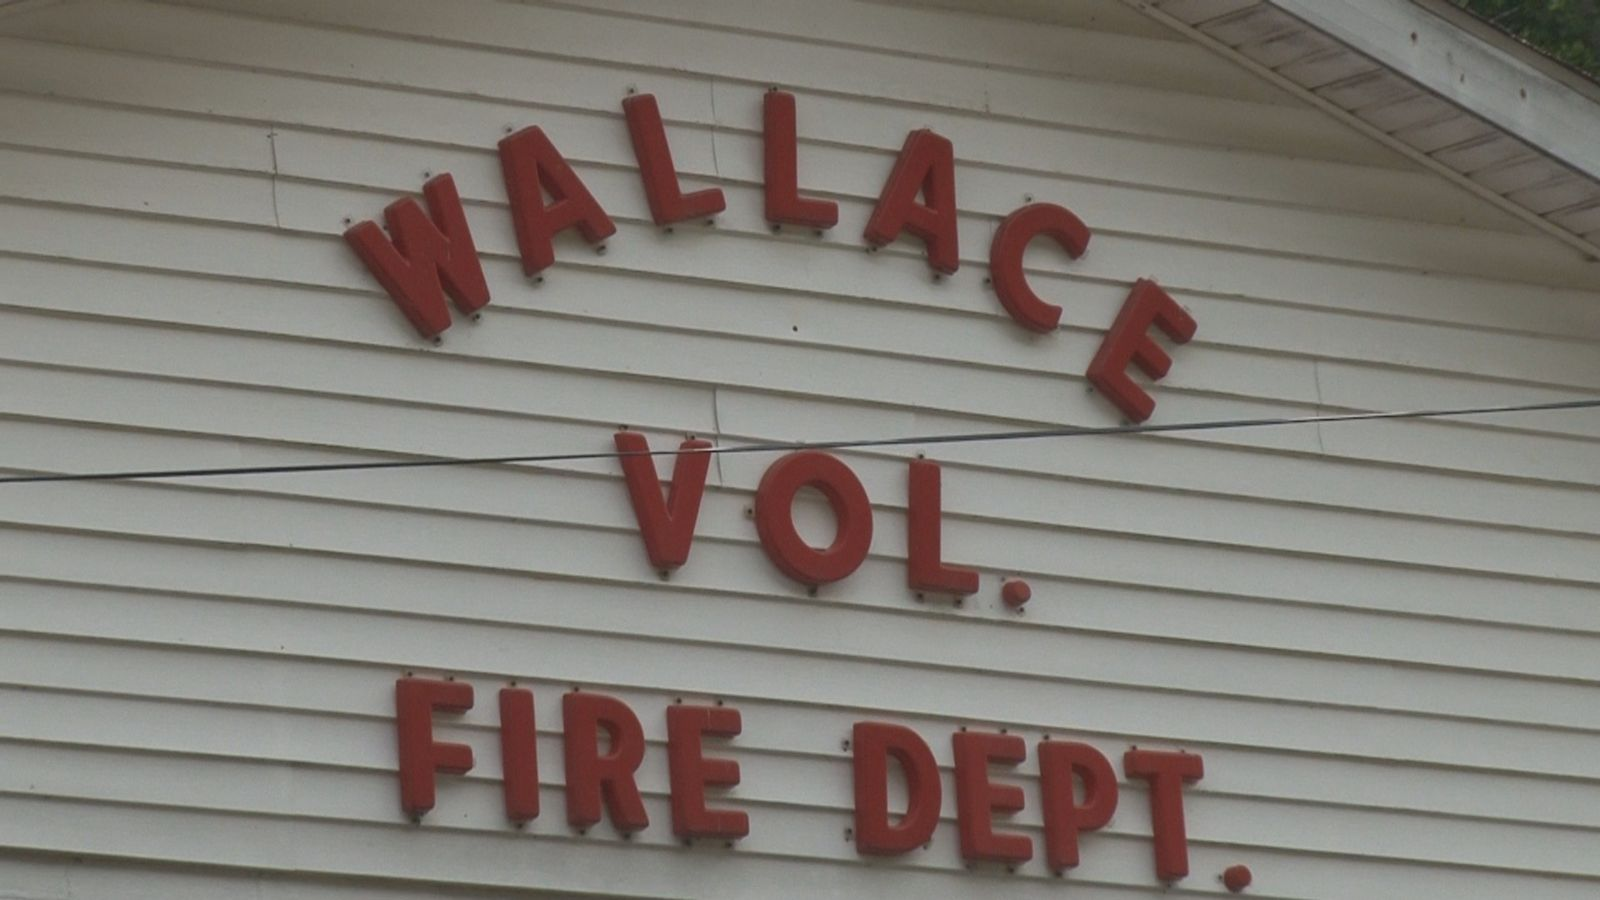 Wallace Fire Department Sign